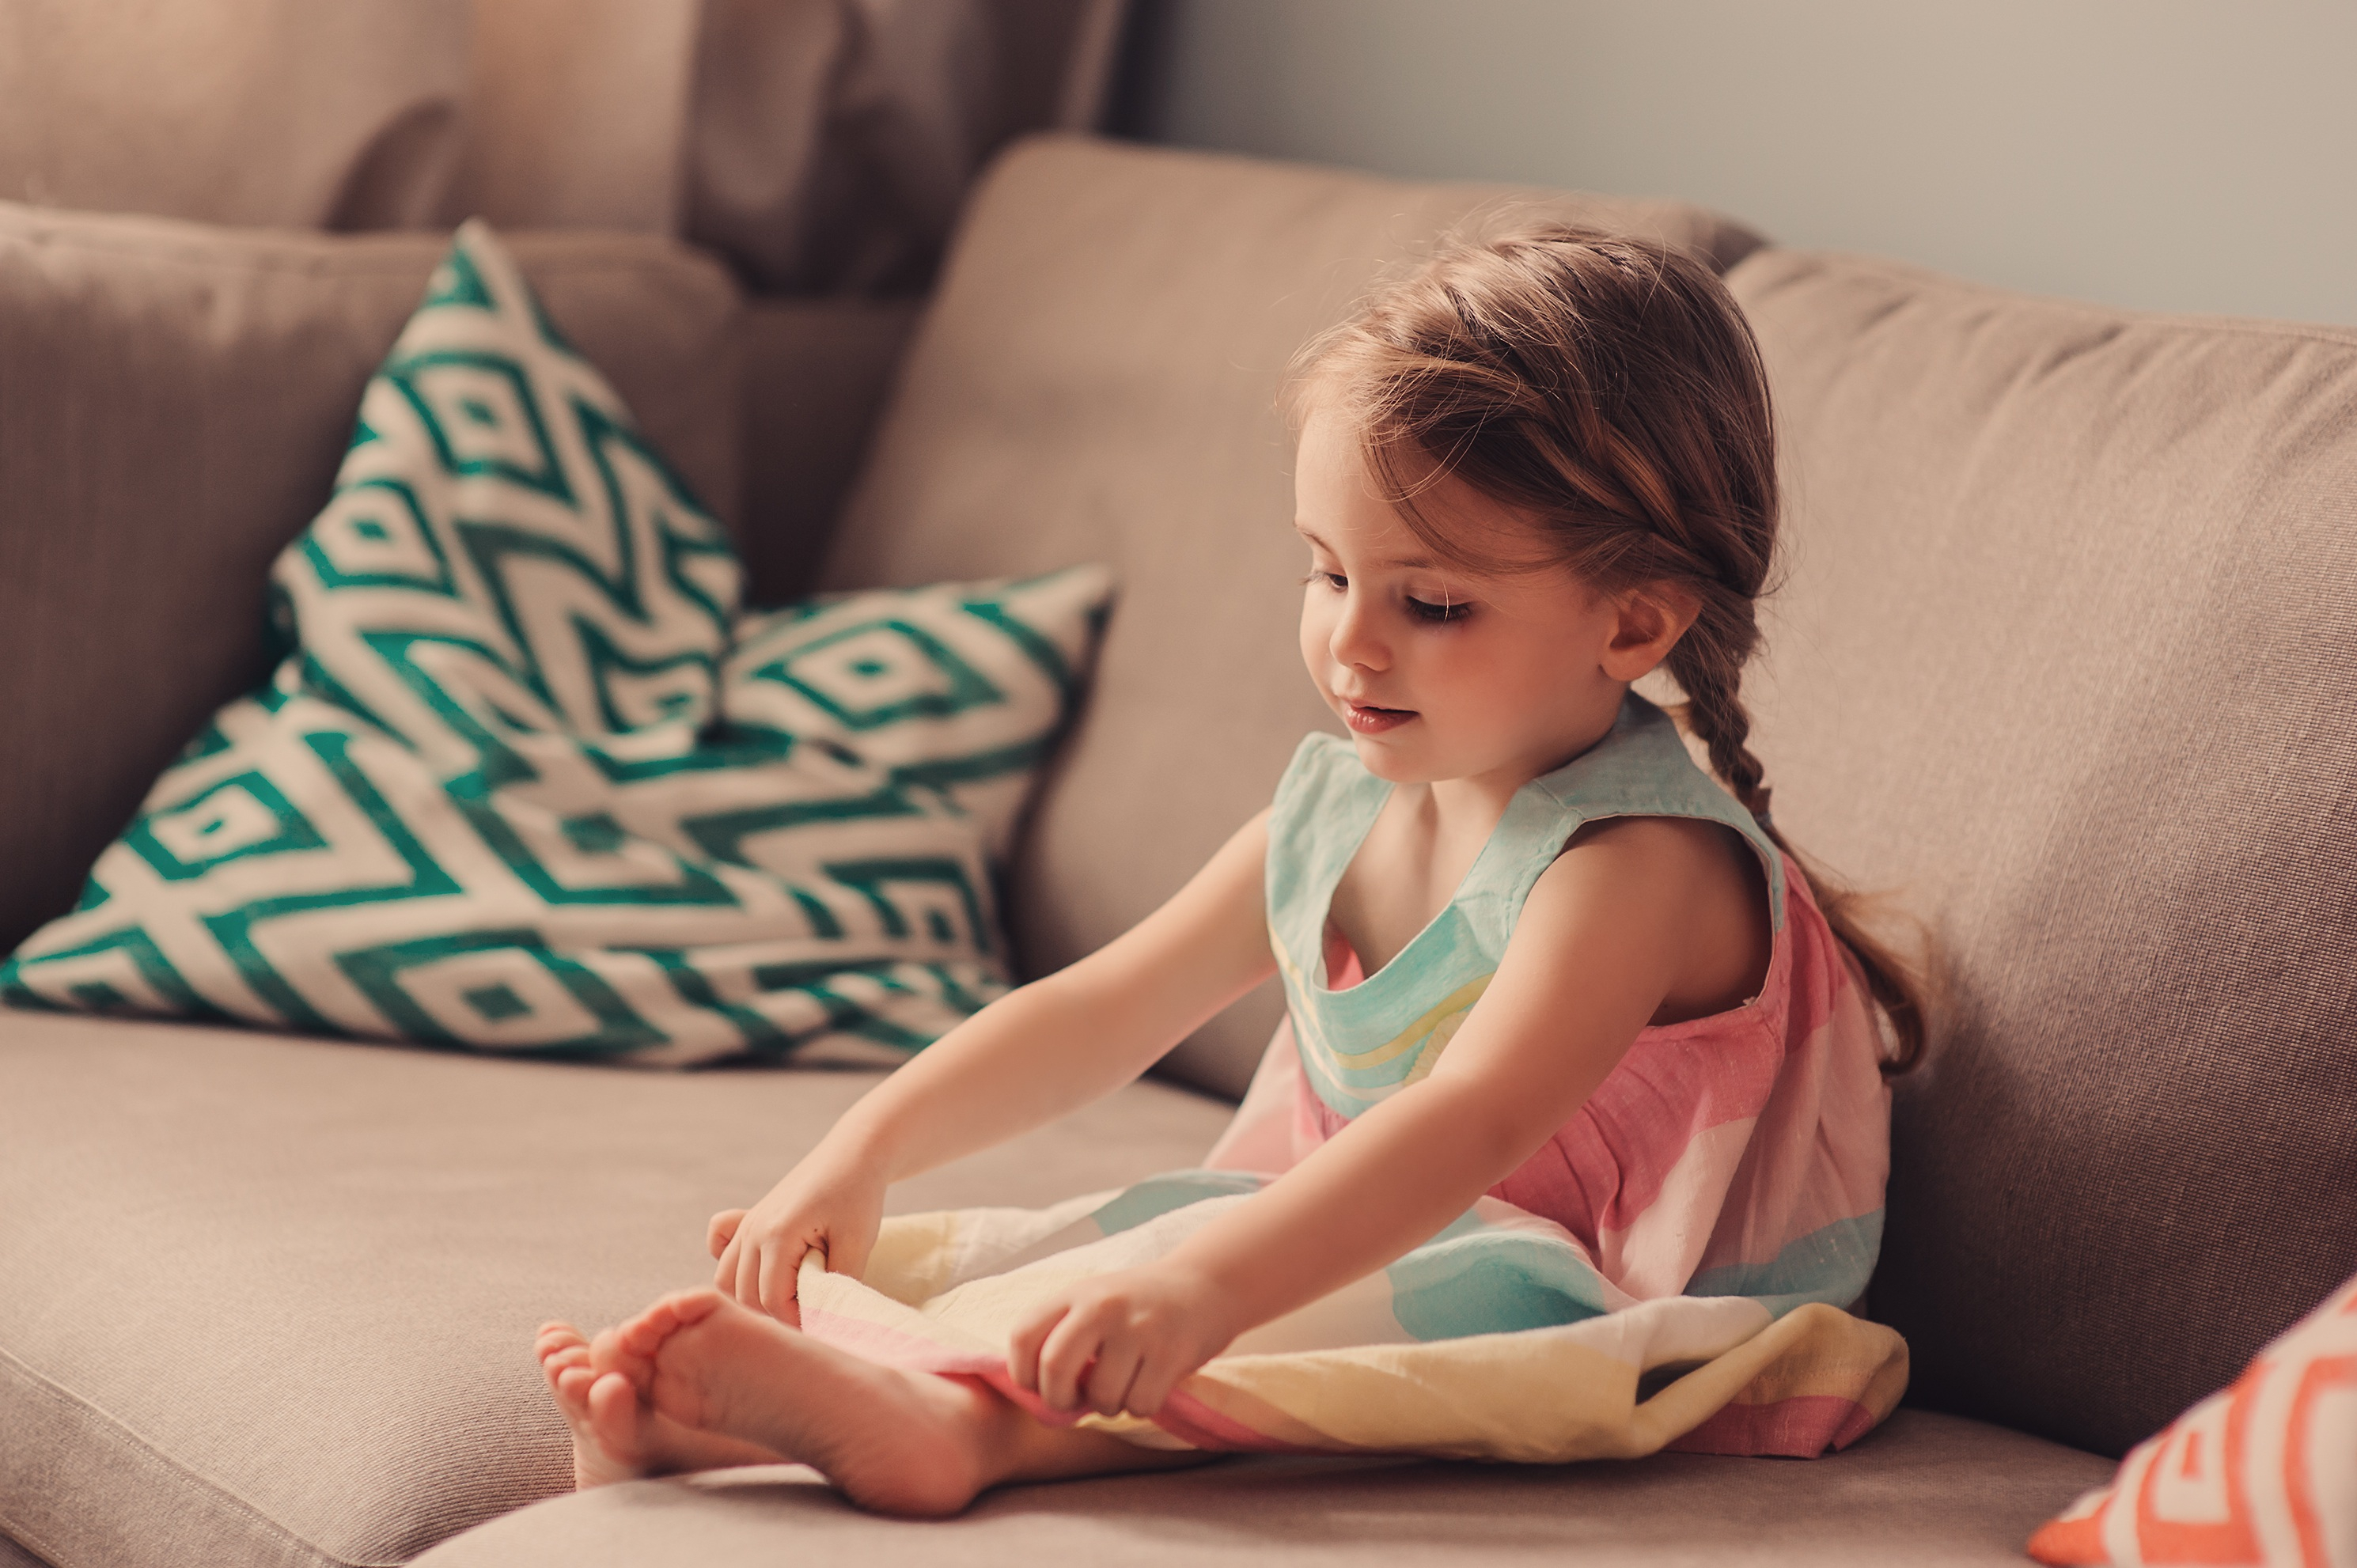 cute toddler girl playing on sofa at home; Shutterstock ID 331899005; Title: britse babynamen